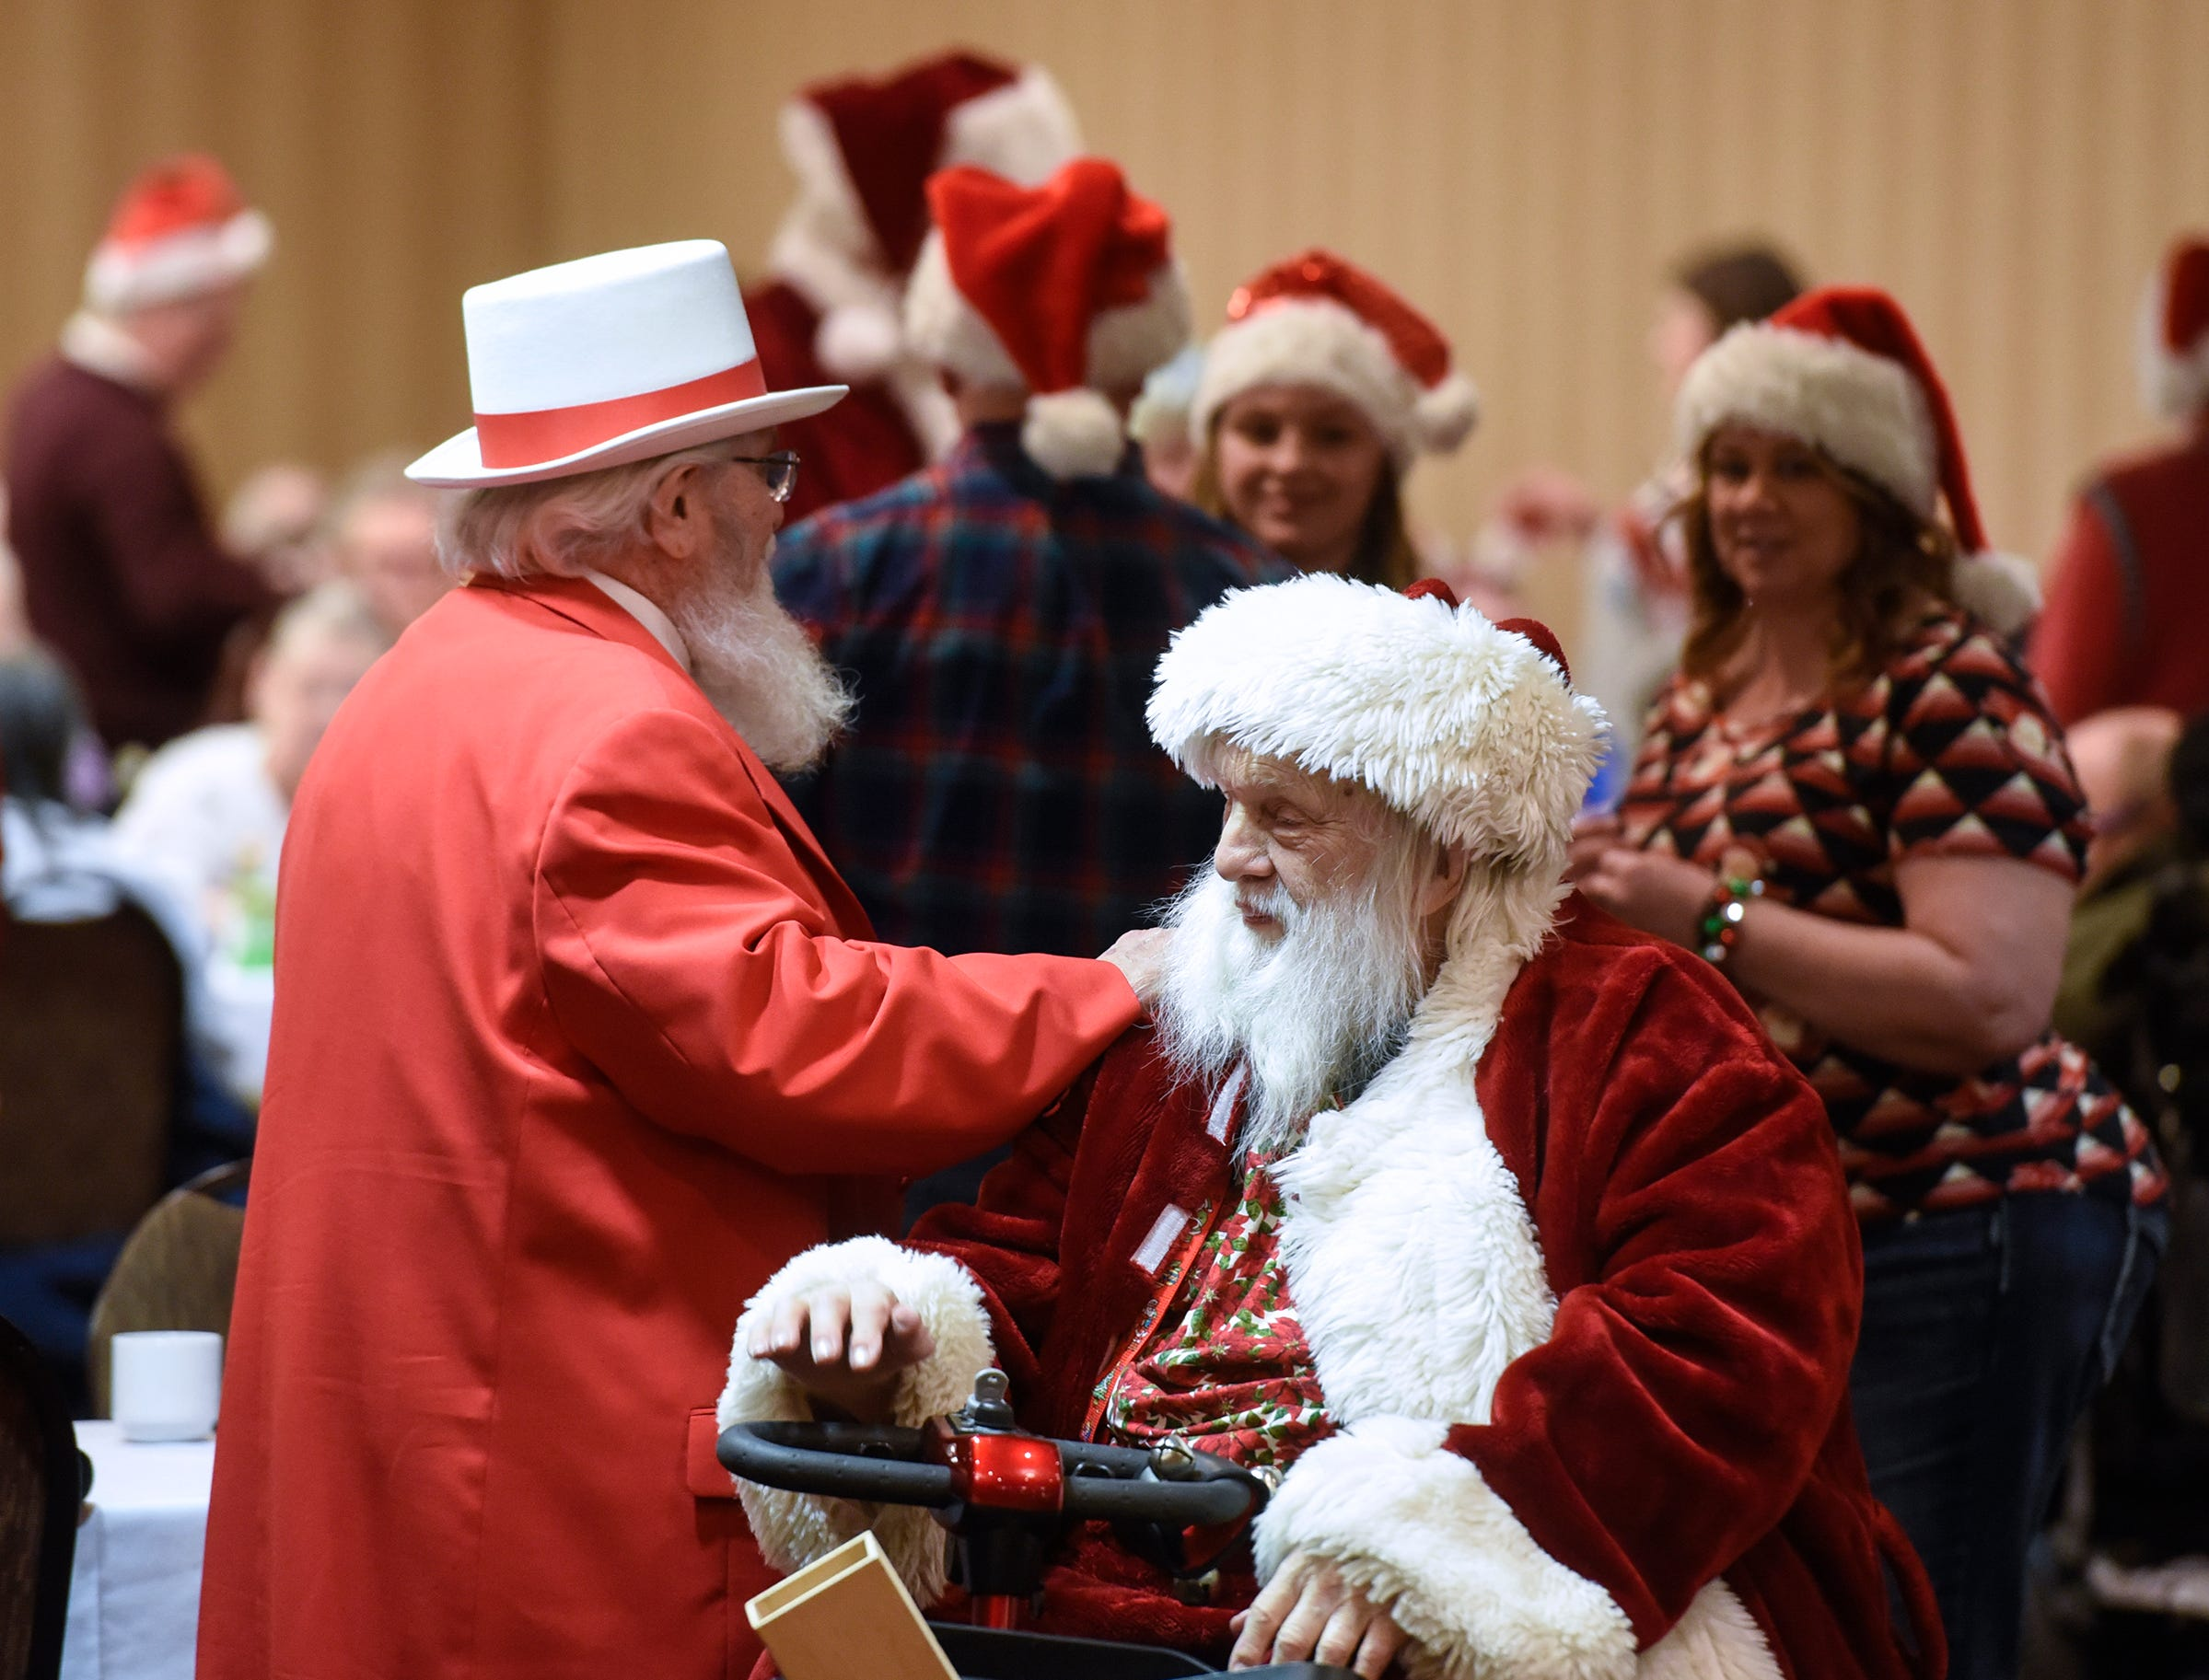 Santas greet the crowd during the Dinner with Santa event Monday, Dec. 17, in St. Cloud.